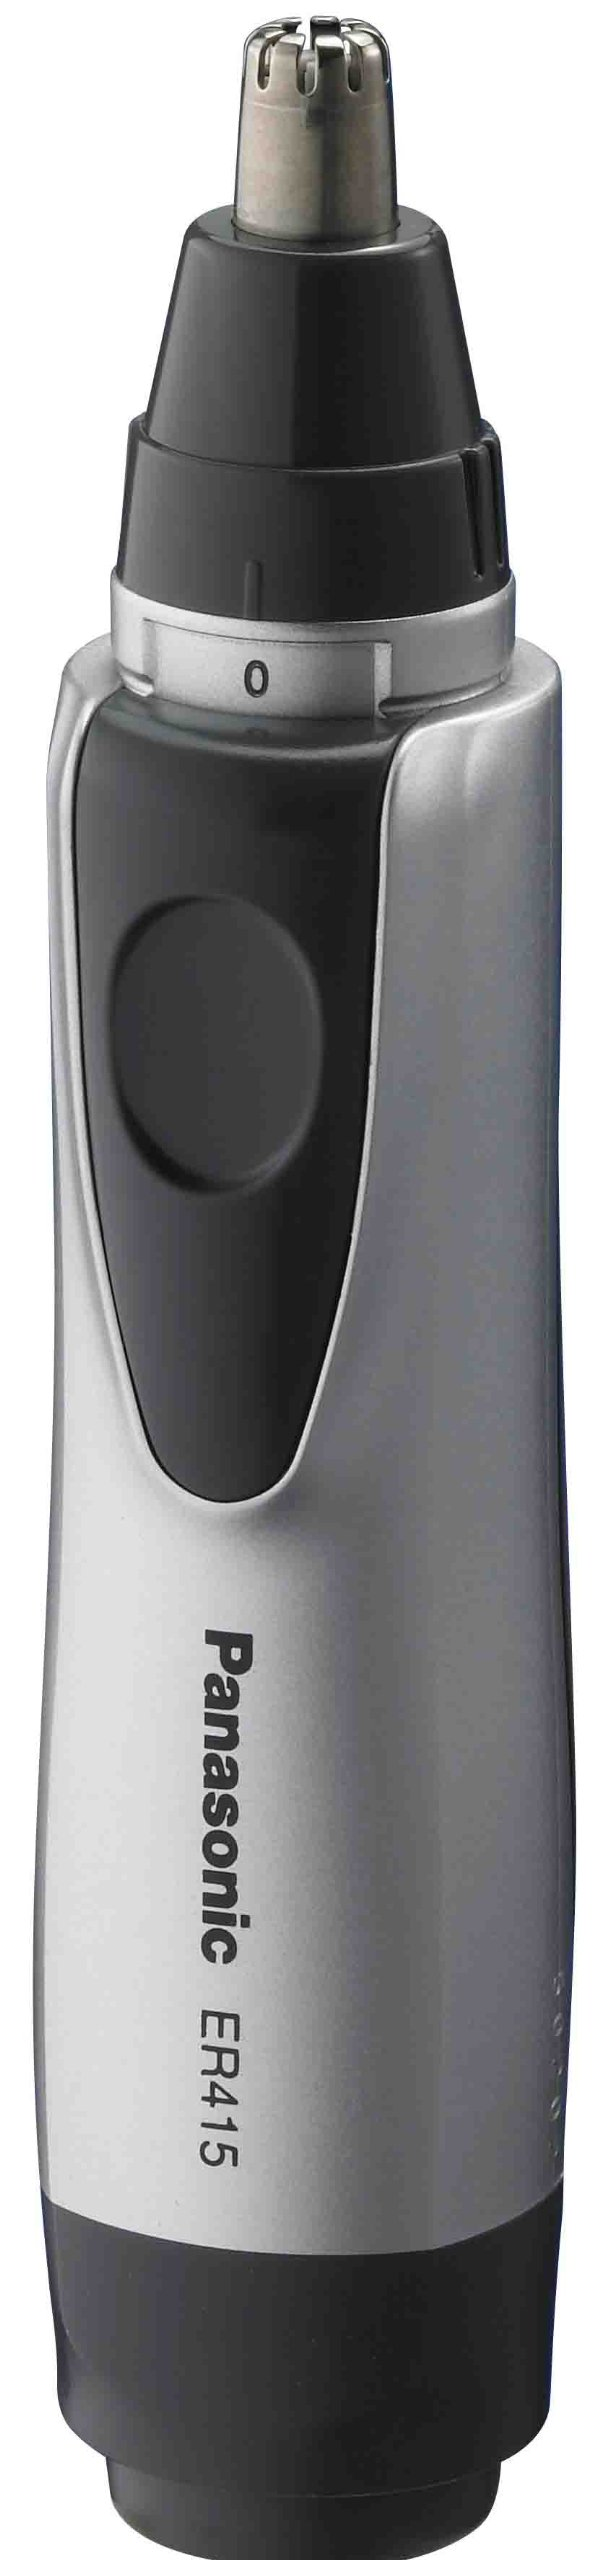 Panasonic Ear and Nose Trimmer, Wet/Dry Convenient, ER415SC